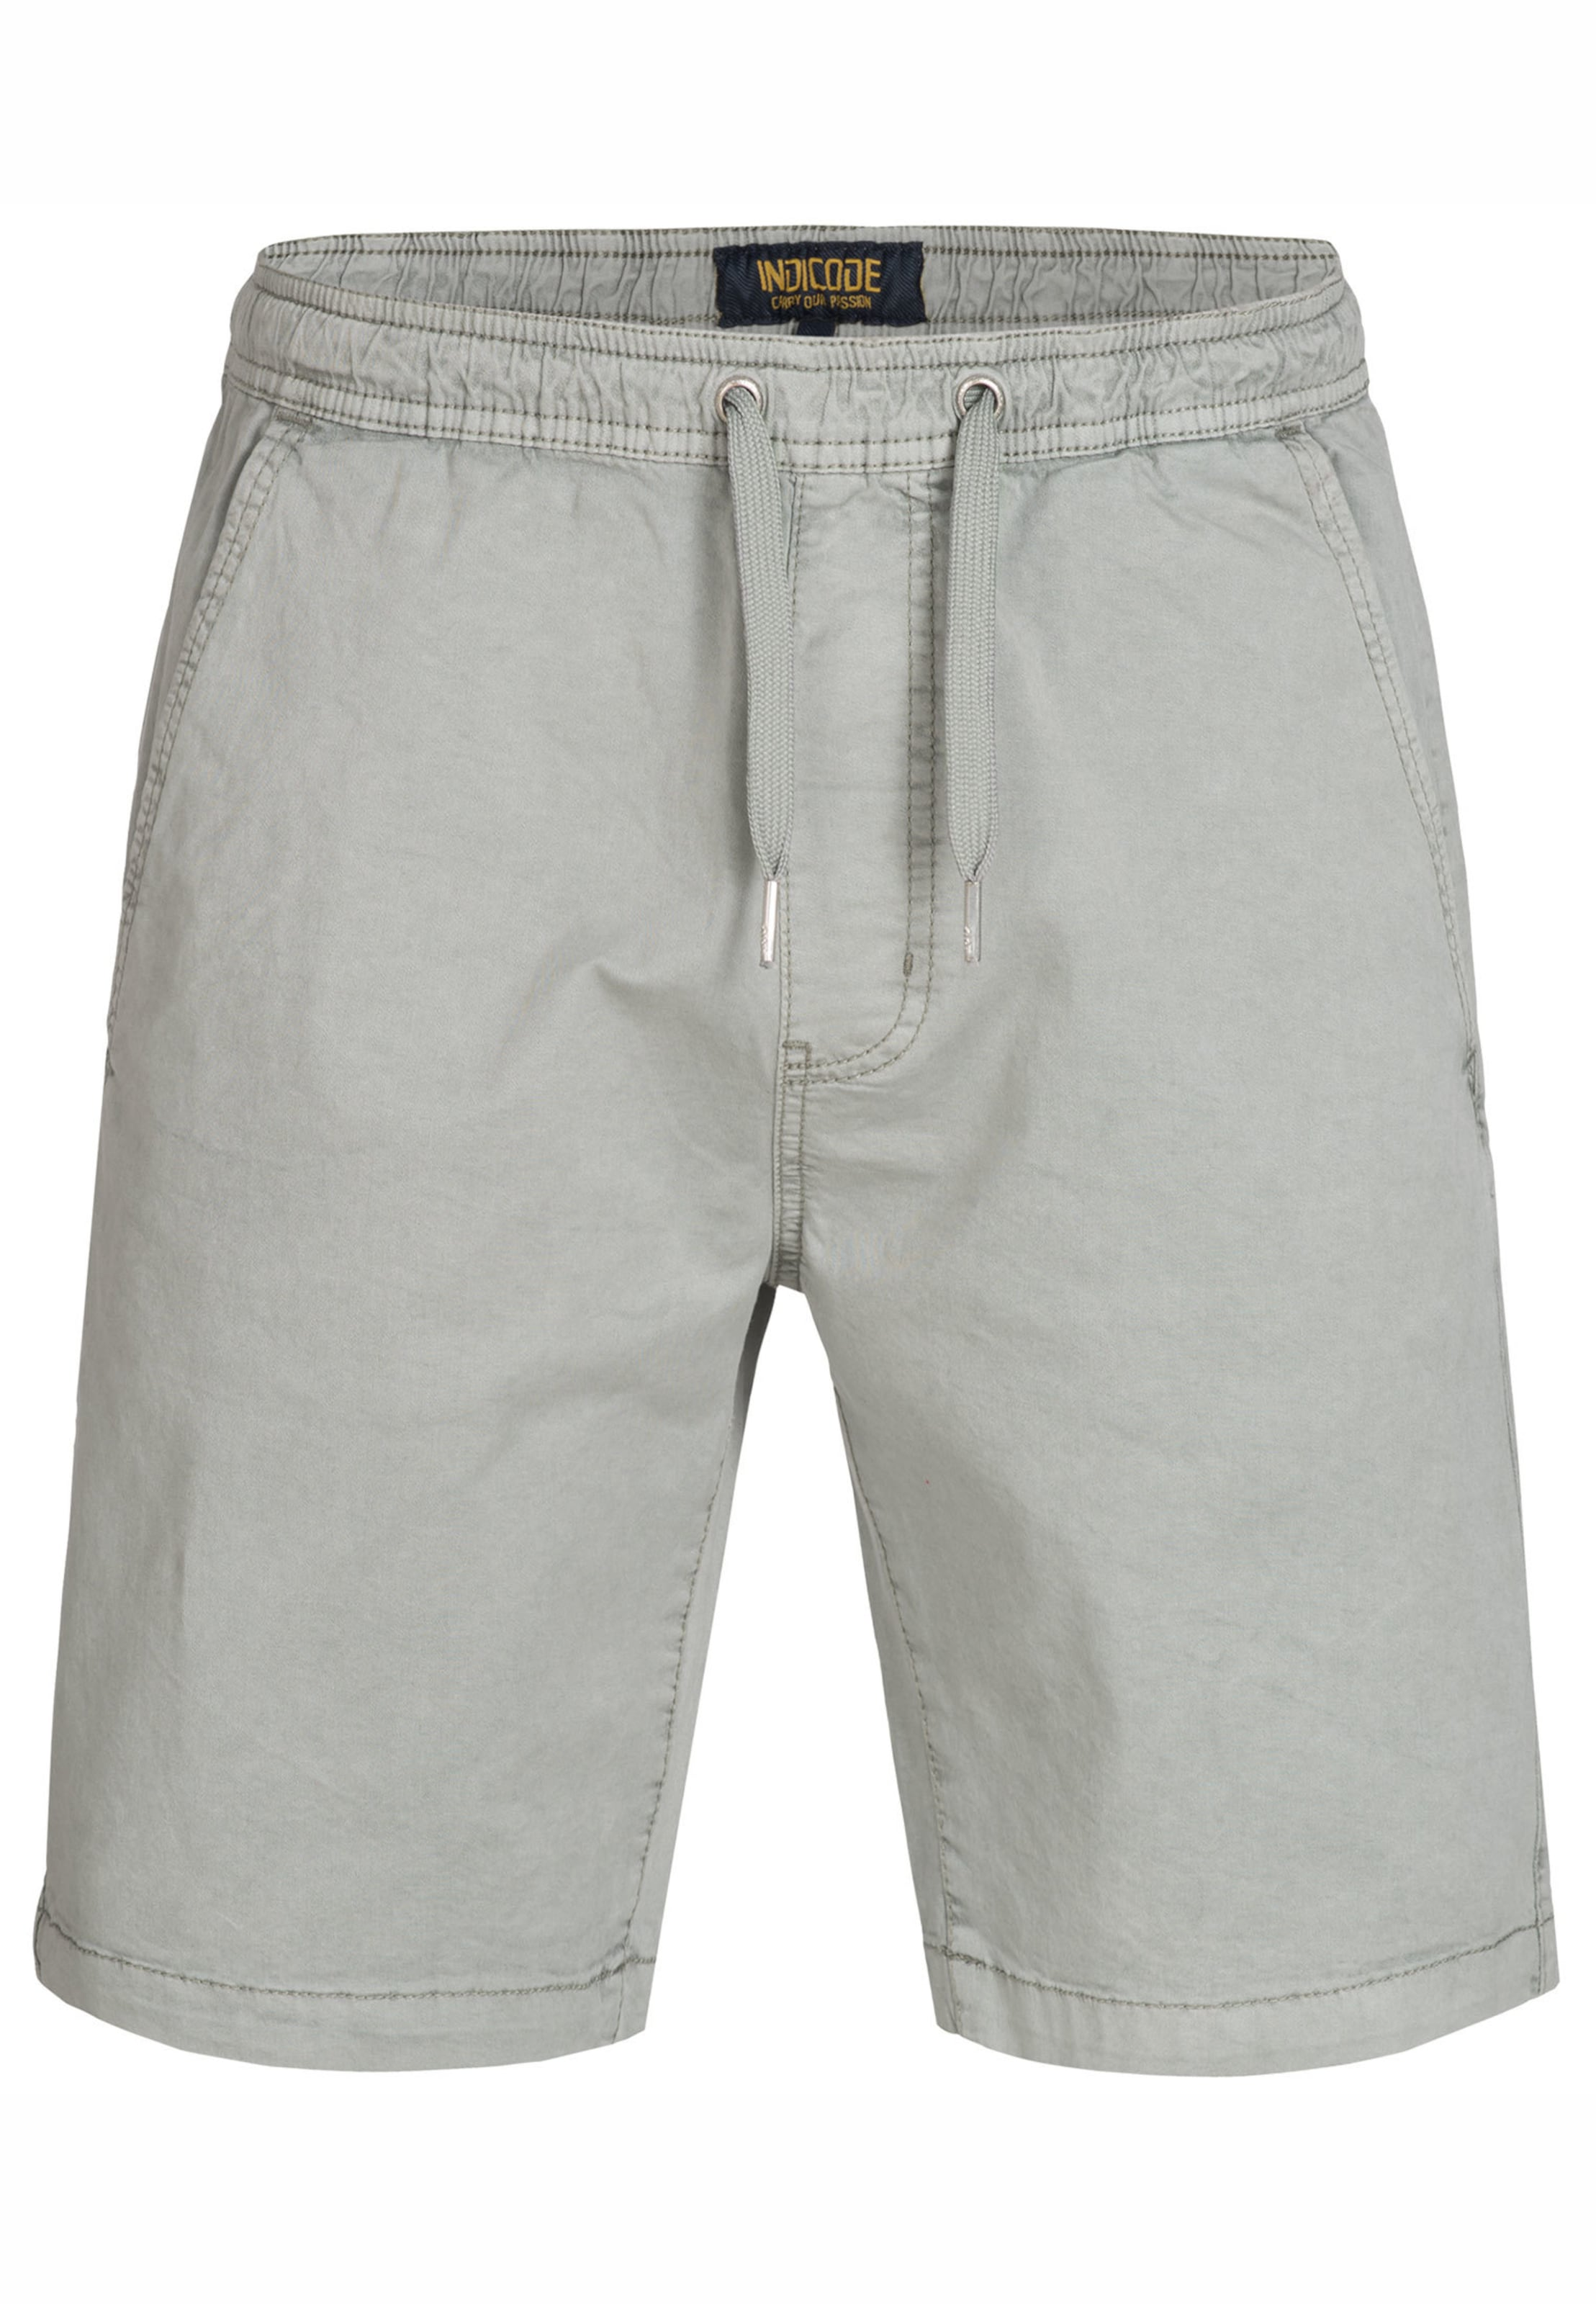 Shorts In Hellgrau Indicode Jeans 'kelowna' AS5LcR34jq